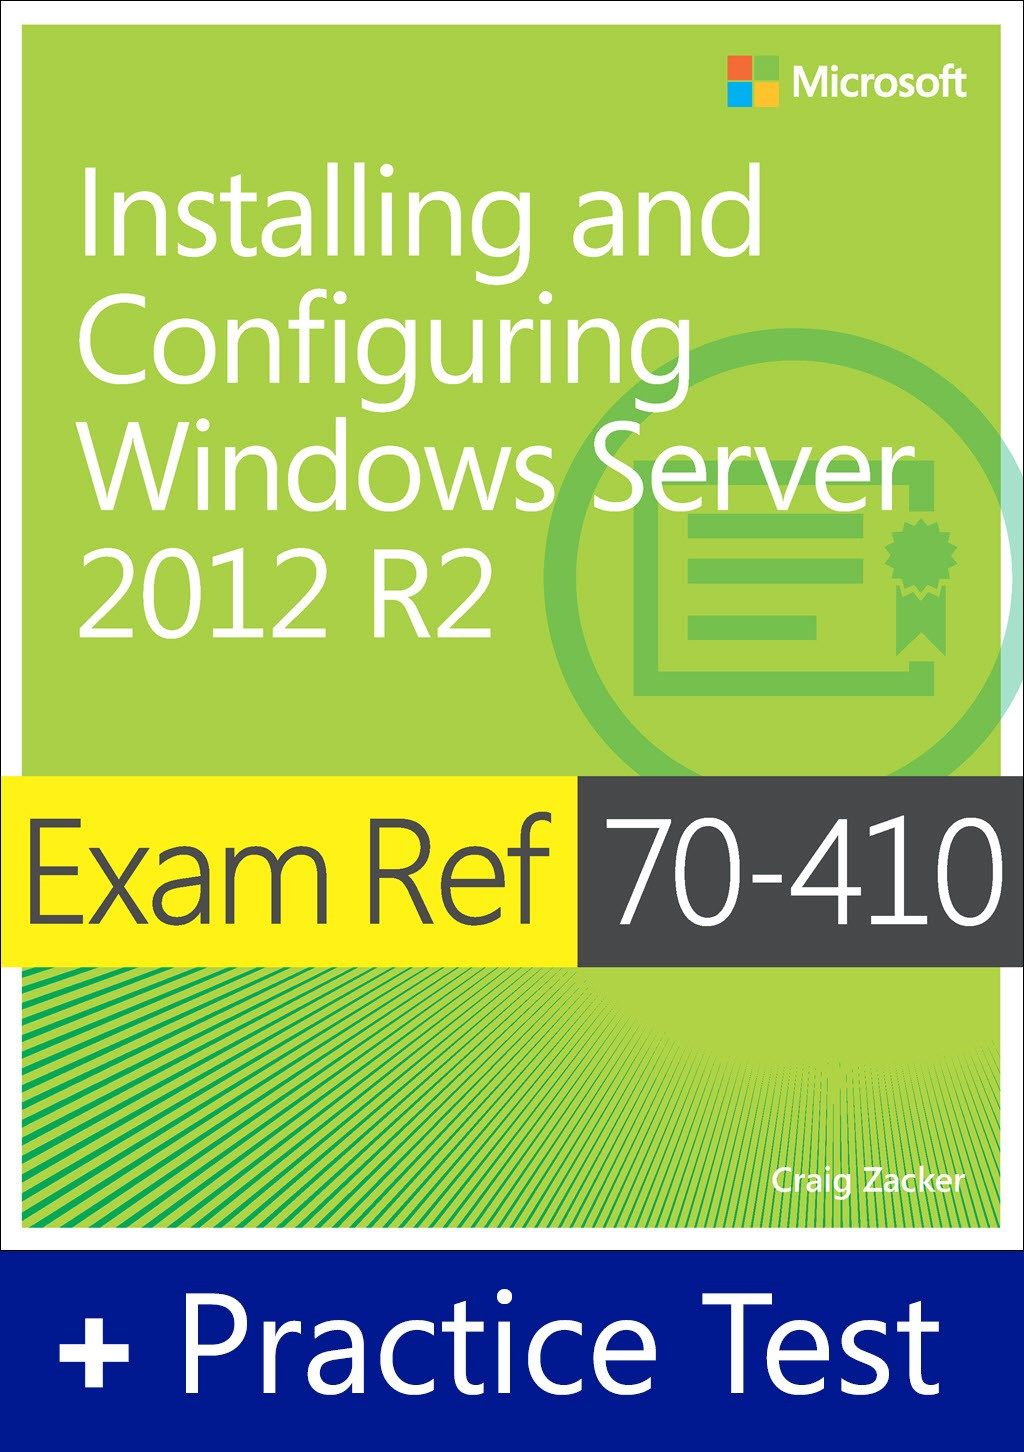 Exam Ref 70-410 Installing and Configuring Windows Server 2012 R2 with Practice Test